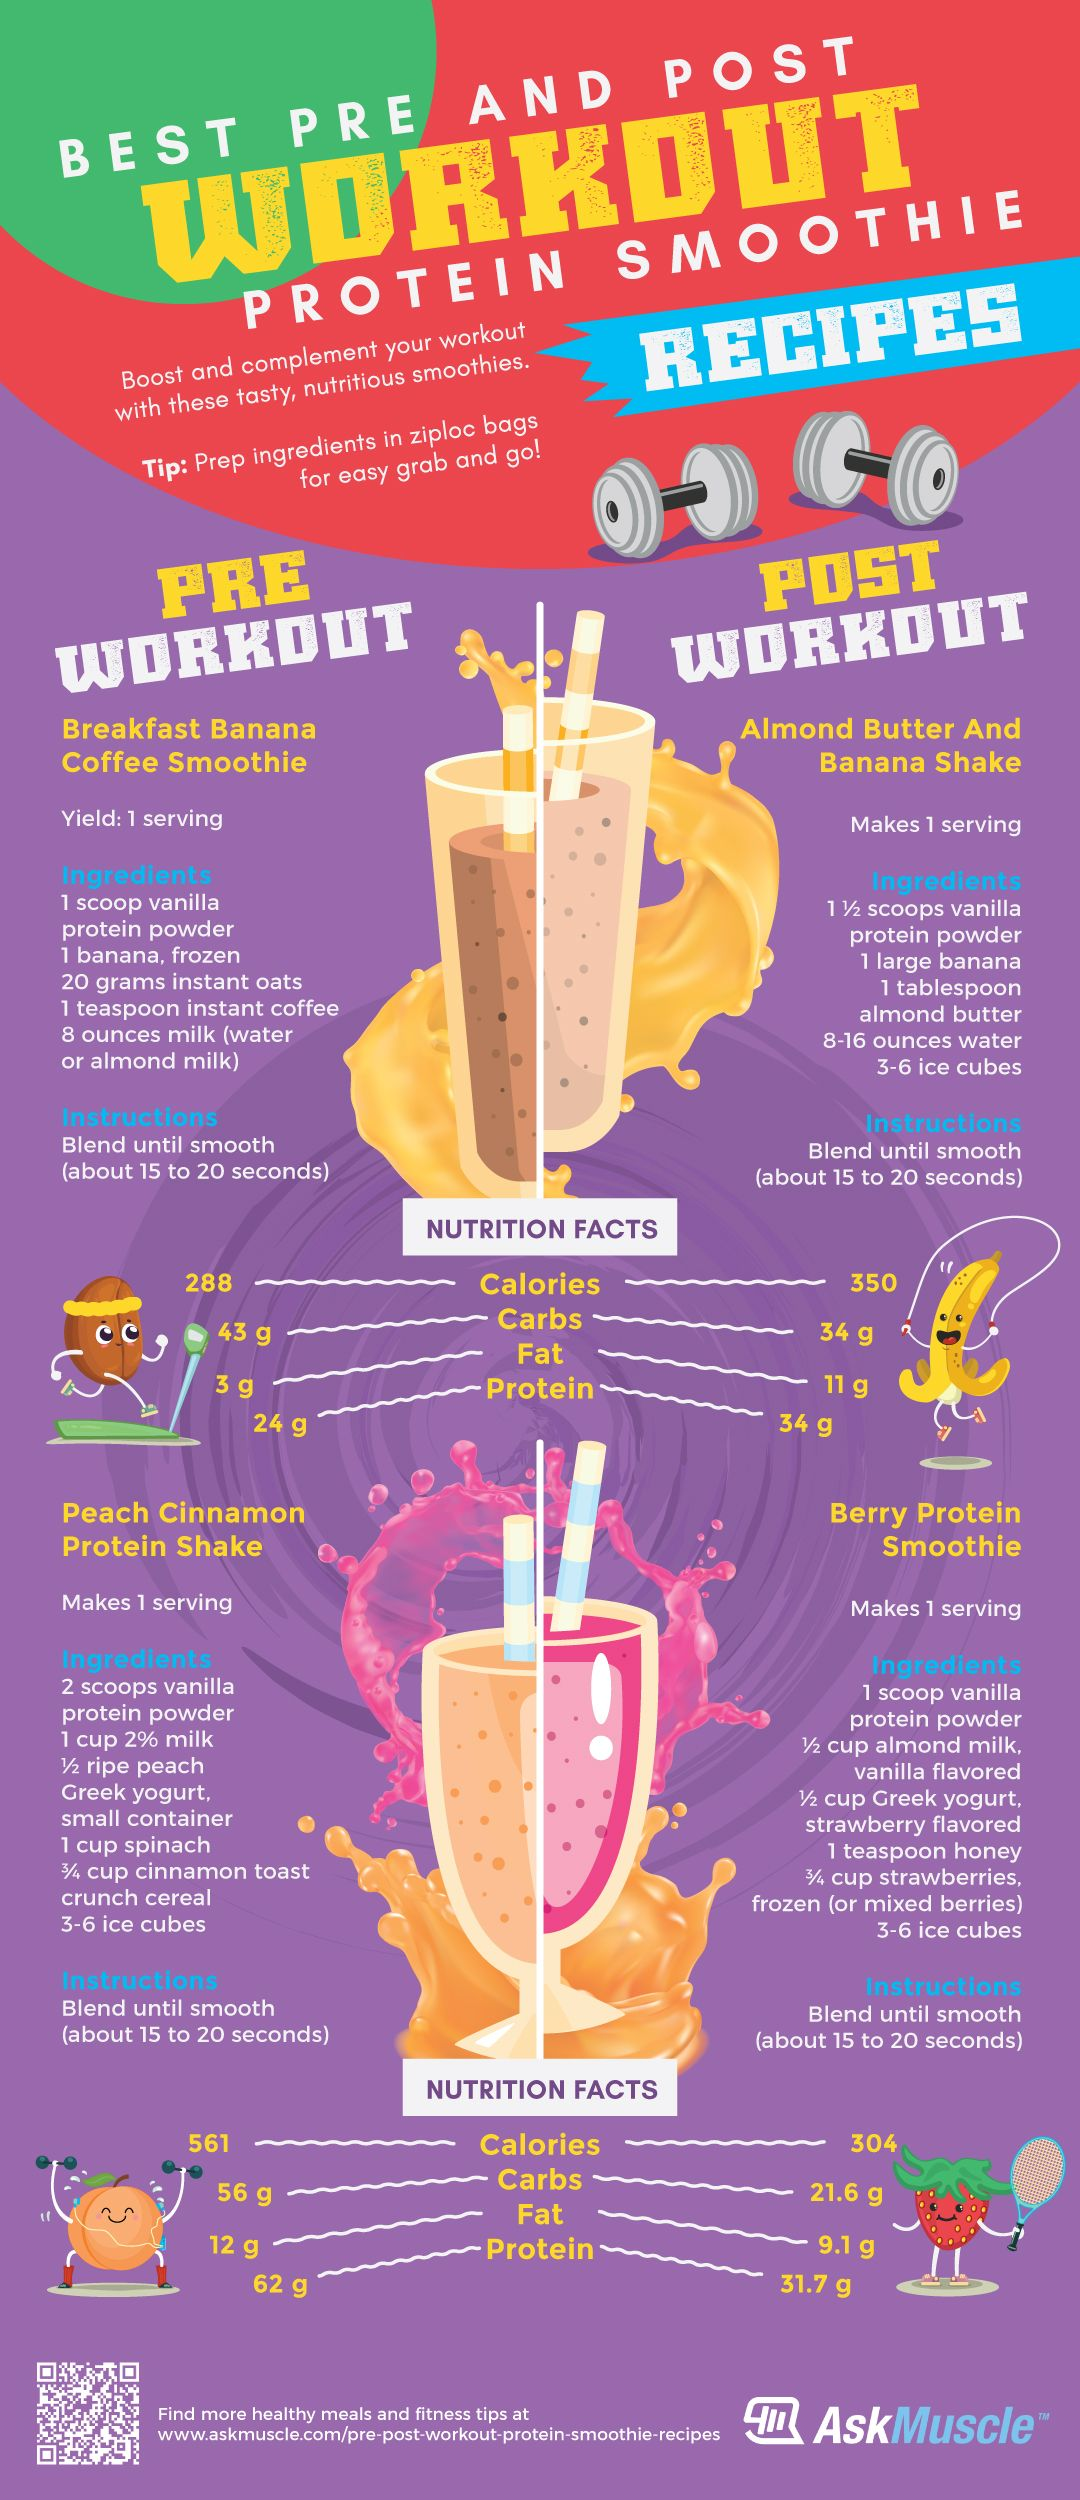 Best Post and Pre Workout Protein Shake Recipes [INFOGRAPHIC] #wheyproteinrecipes